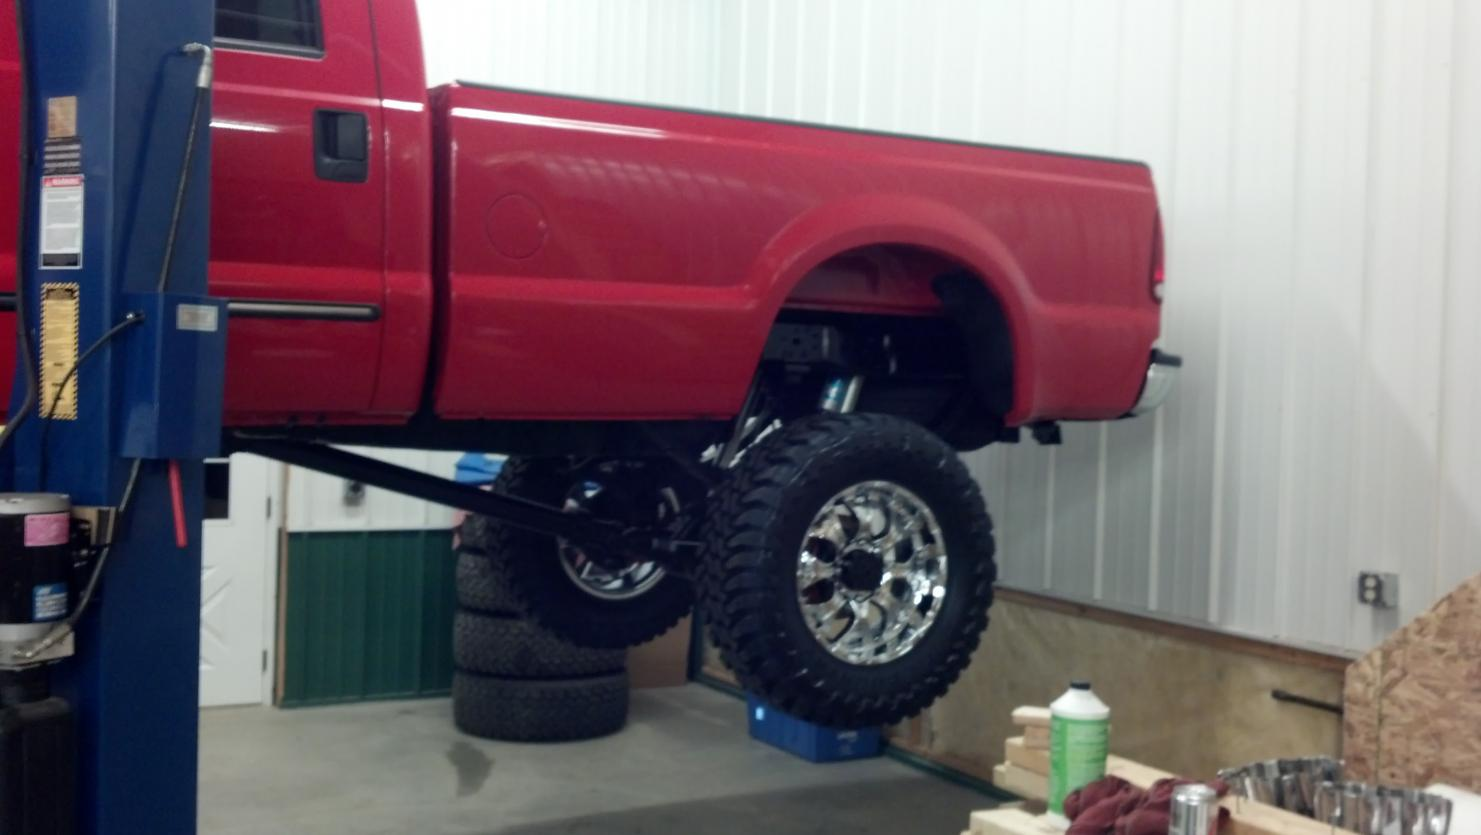 Installing 8 inch full traction lift-2012-05-24_23-05-44_50.jpg